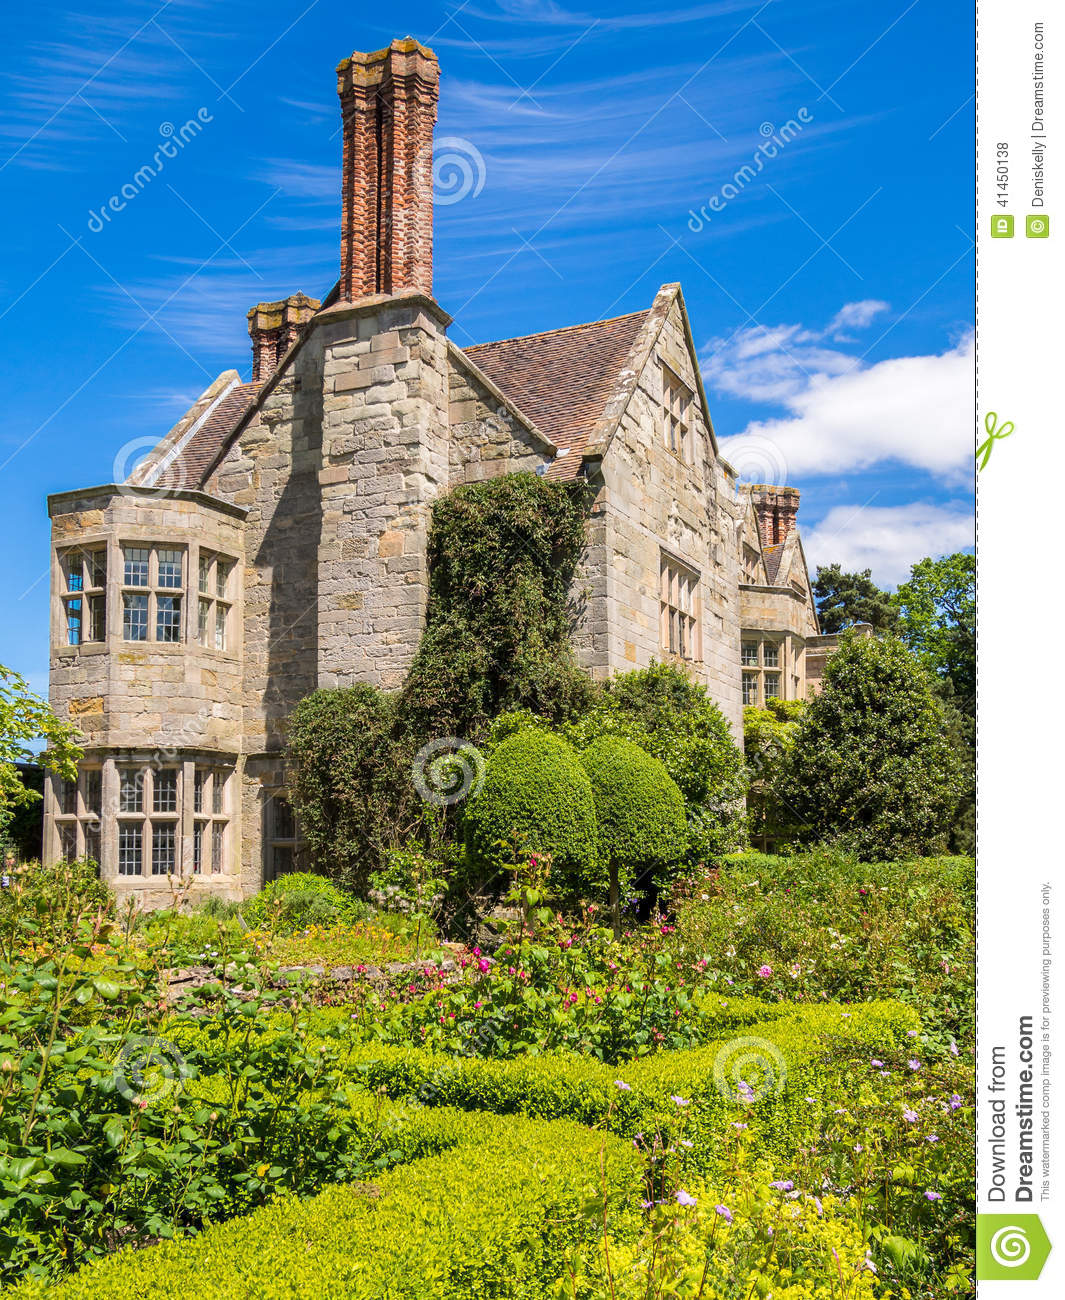 Historic English Country House Stock Photo Image 41450138